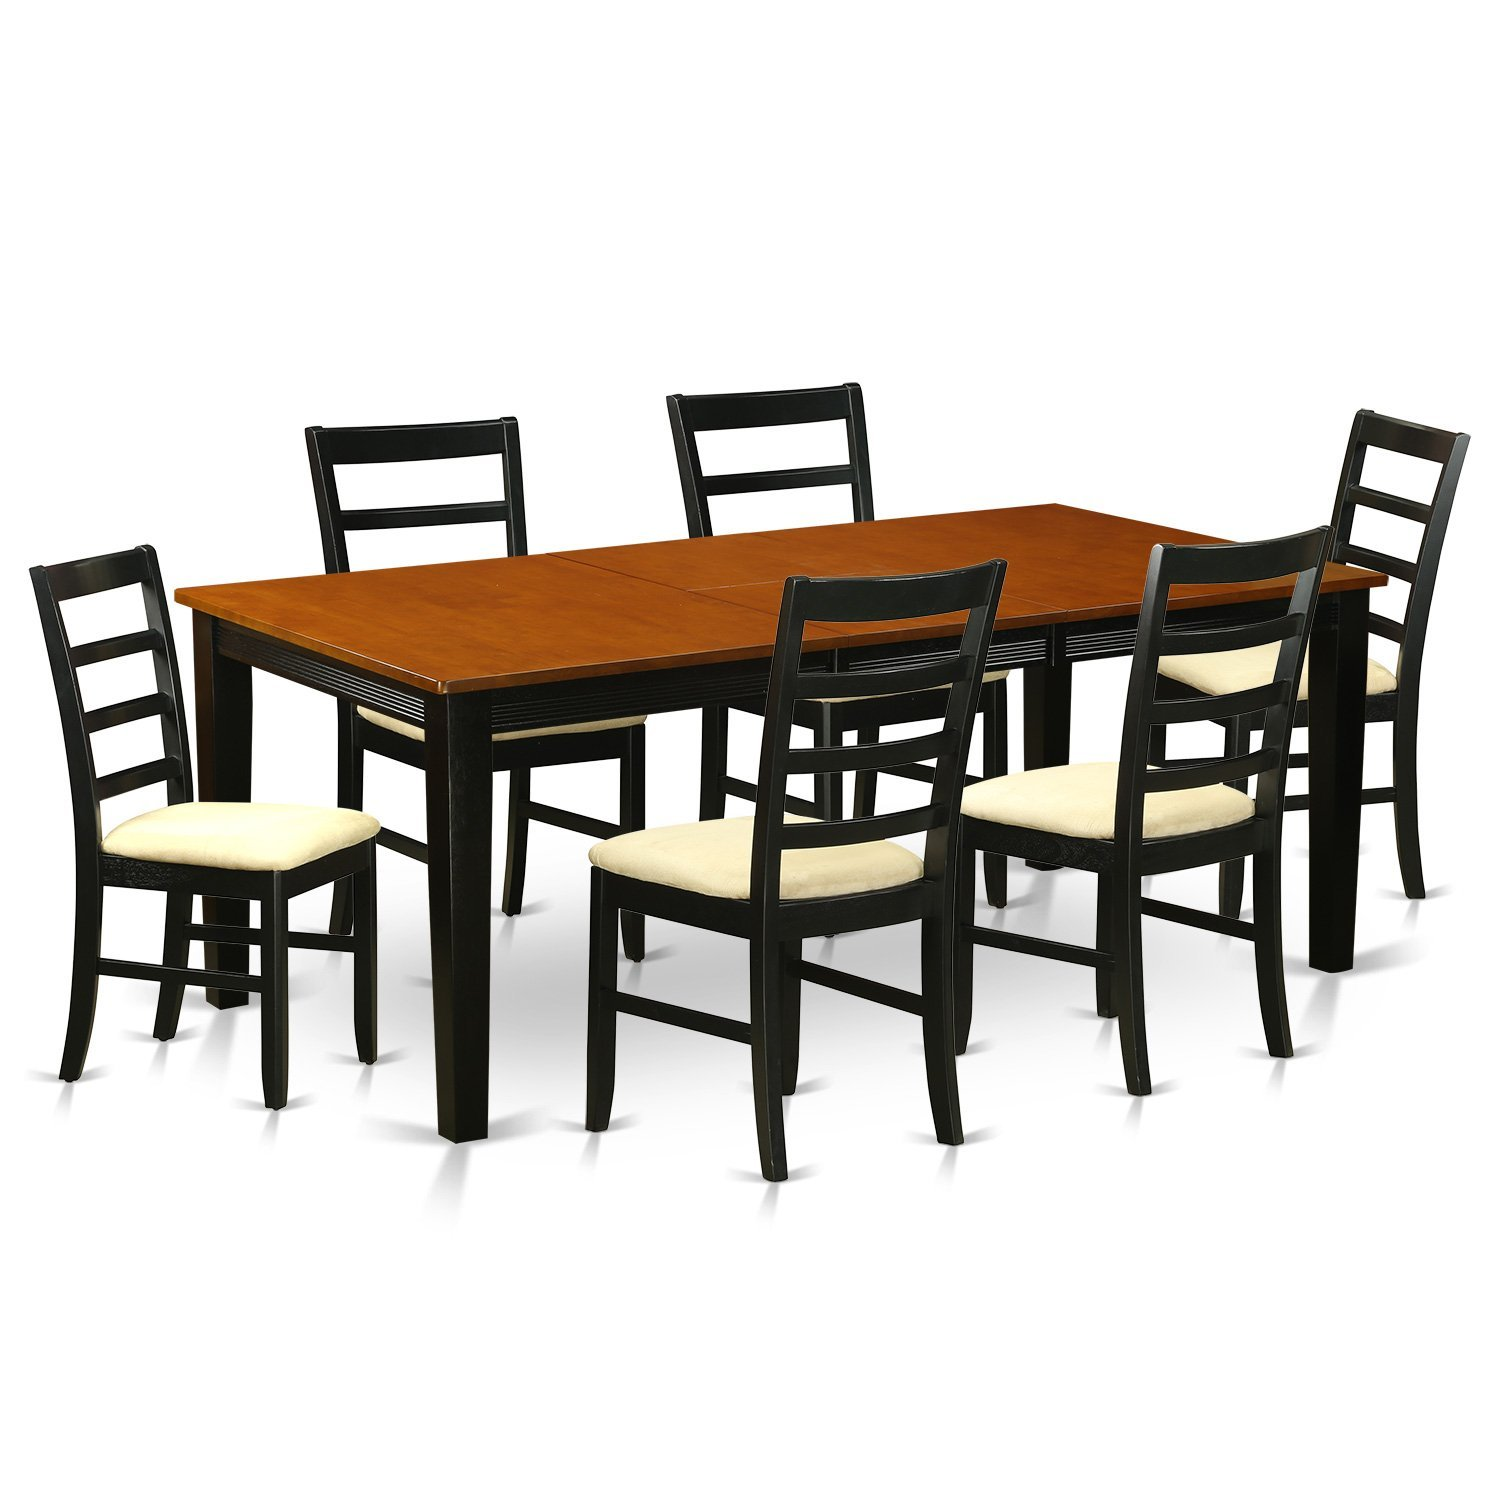 East West Furniture QUPF7-BCH-C 7 Piece Dining Table with 6 Solid Wood Chairs Set